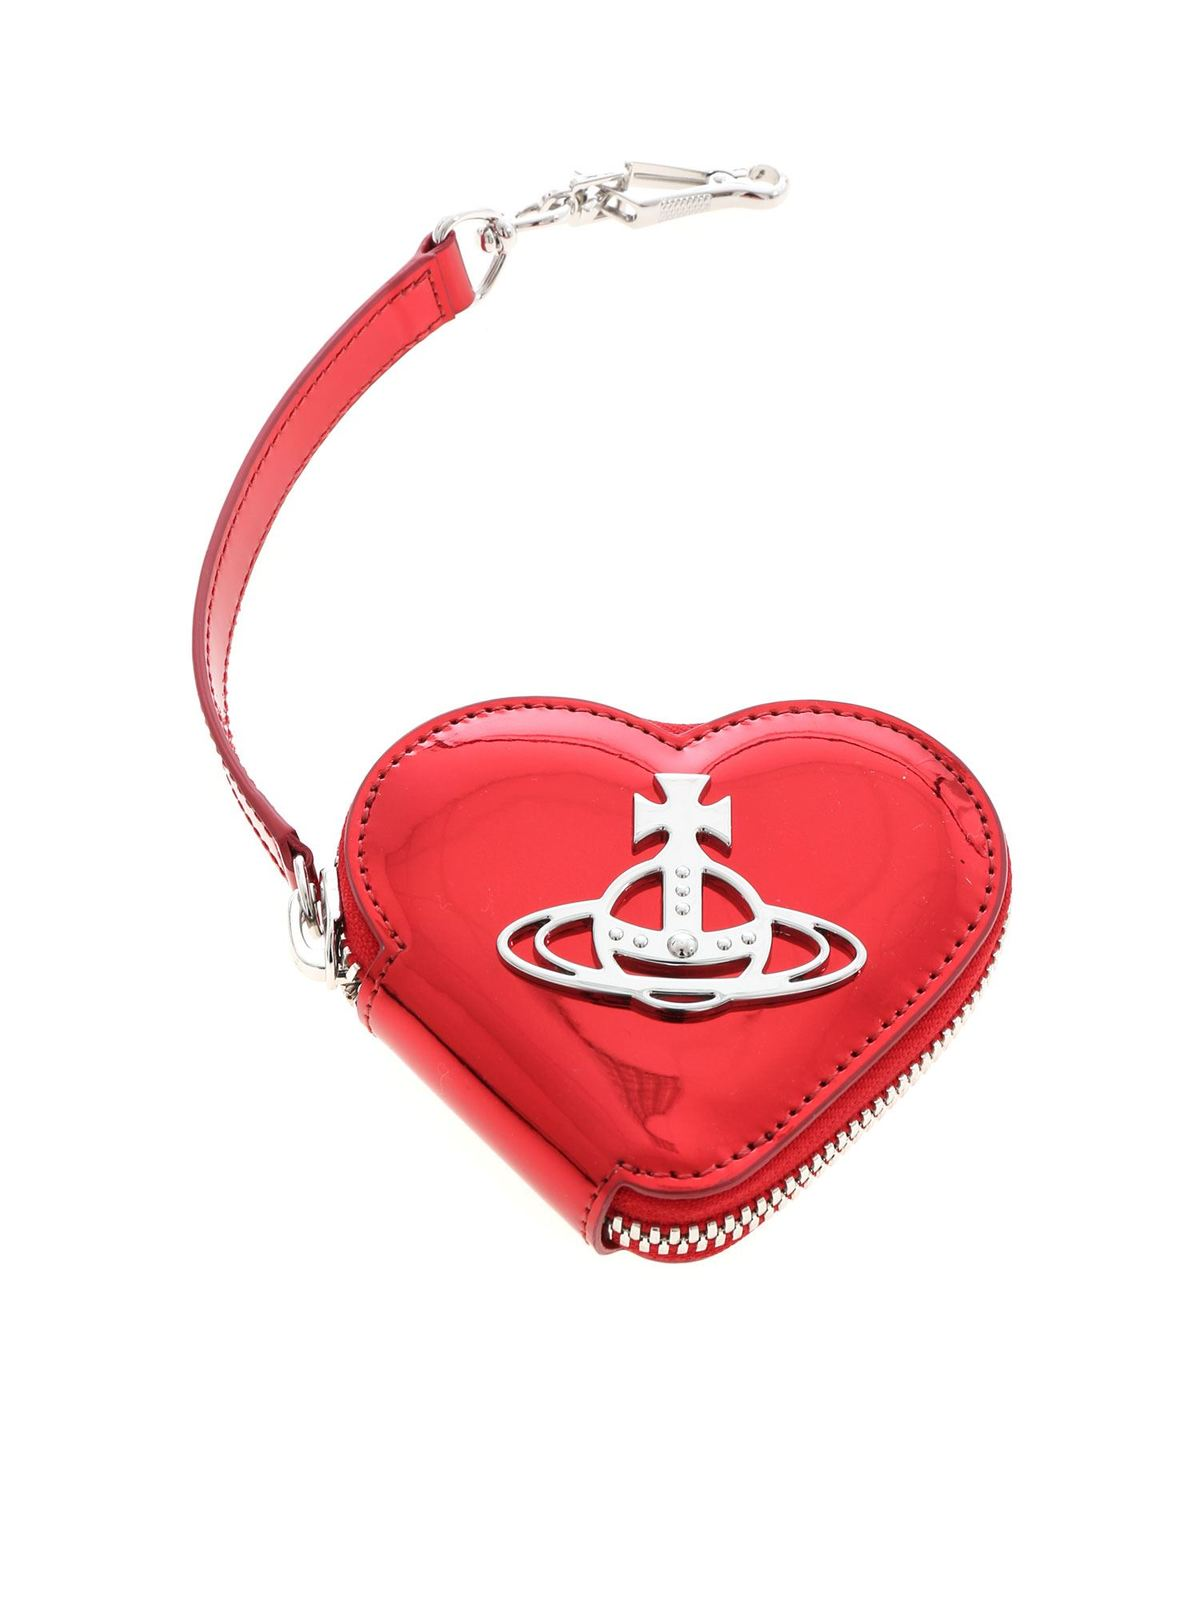 Vivienne Westwood JOHANNA COIN PURSE IN RED